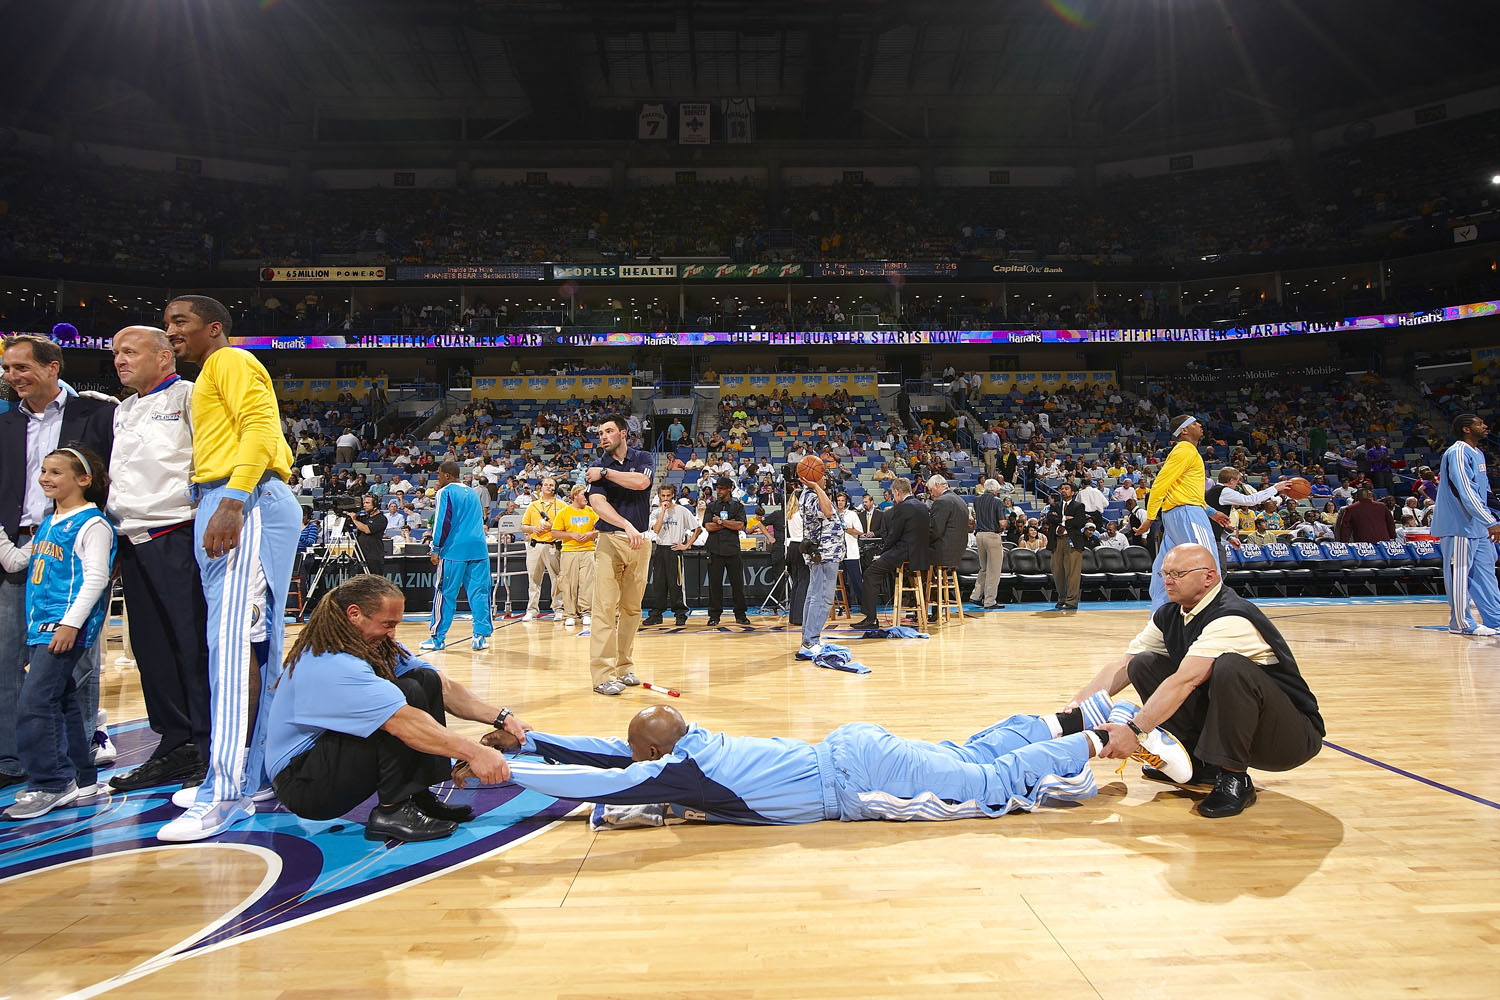 Denver's Chauncey Billups being stretched out by trainers before a game against the New Orleans Hornets in 2009.